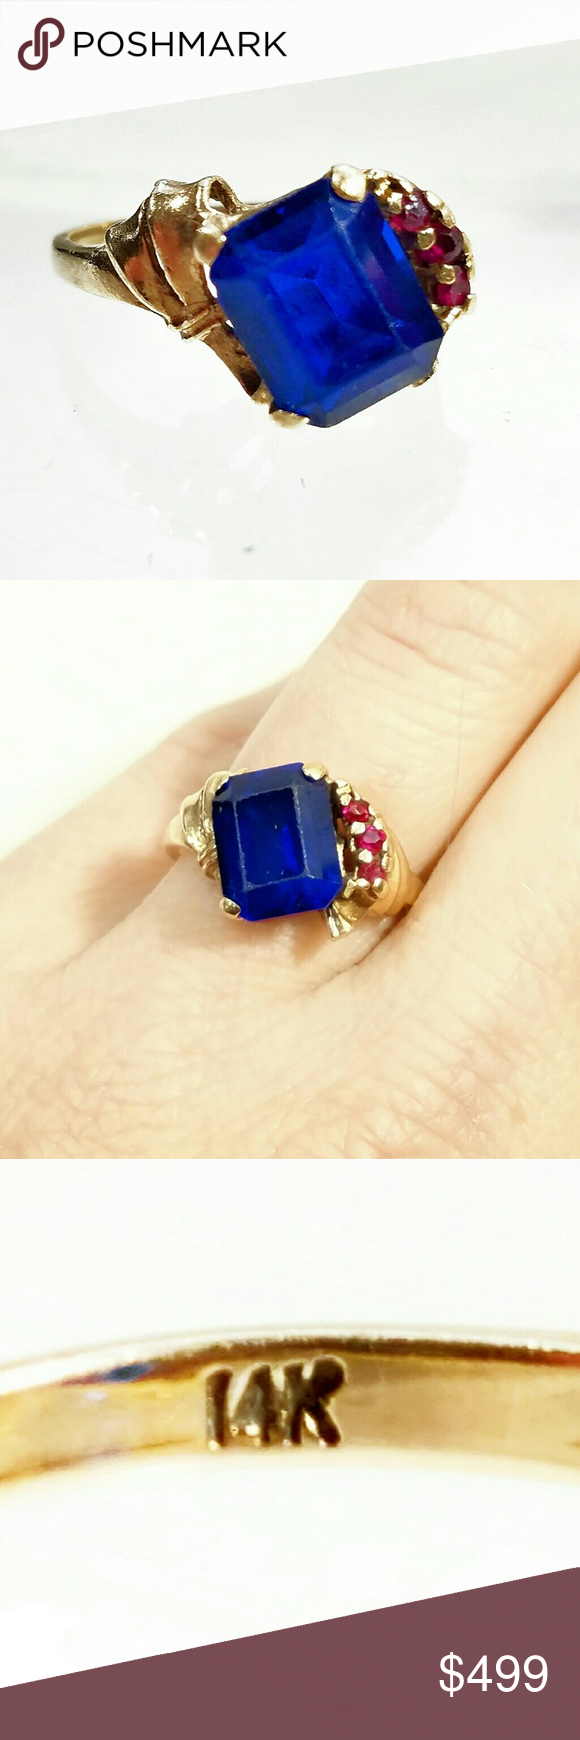 VTG 14K Sapphire, Diamond & Ruby Modernist Ring-6 Superb Vintage 14K  Sapphire, Diamond & Ruby Modernist Ring-Size 6. Beautiful emerald cut Simulated Sapphire with 3 genuine, natural rubies & small diamonds.  Minor wear to the Sapphire due to age. Stamped & tested as 14K solid gold. Vintage Jewelry Rings